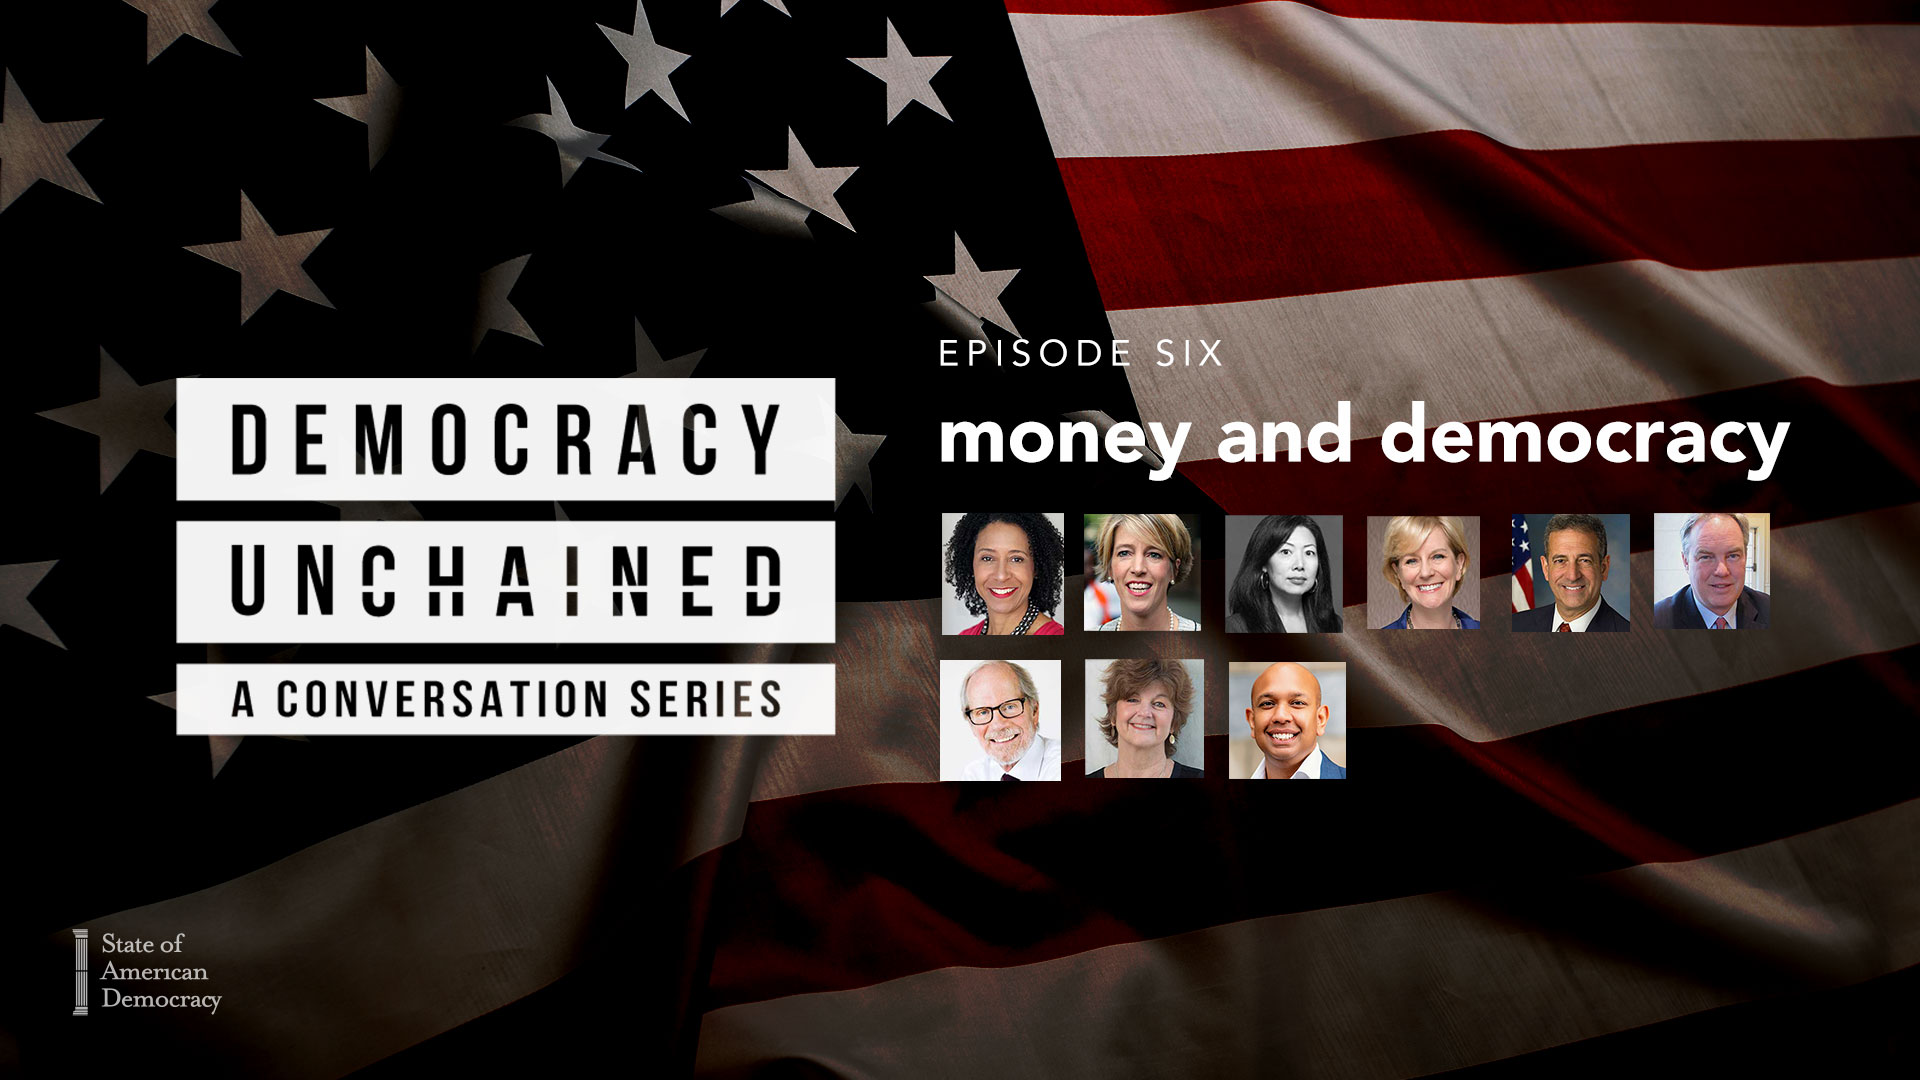 Episode 6   Democracy Unchained: A Conversation Series